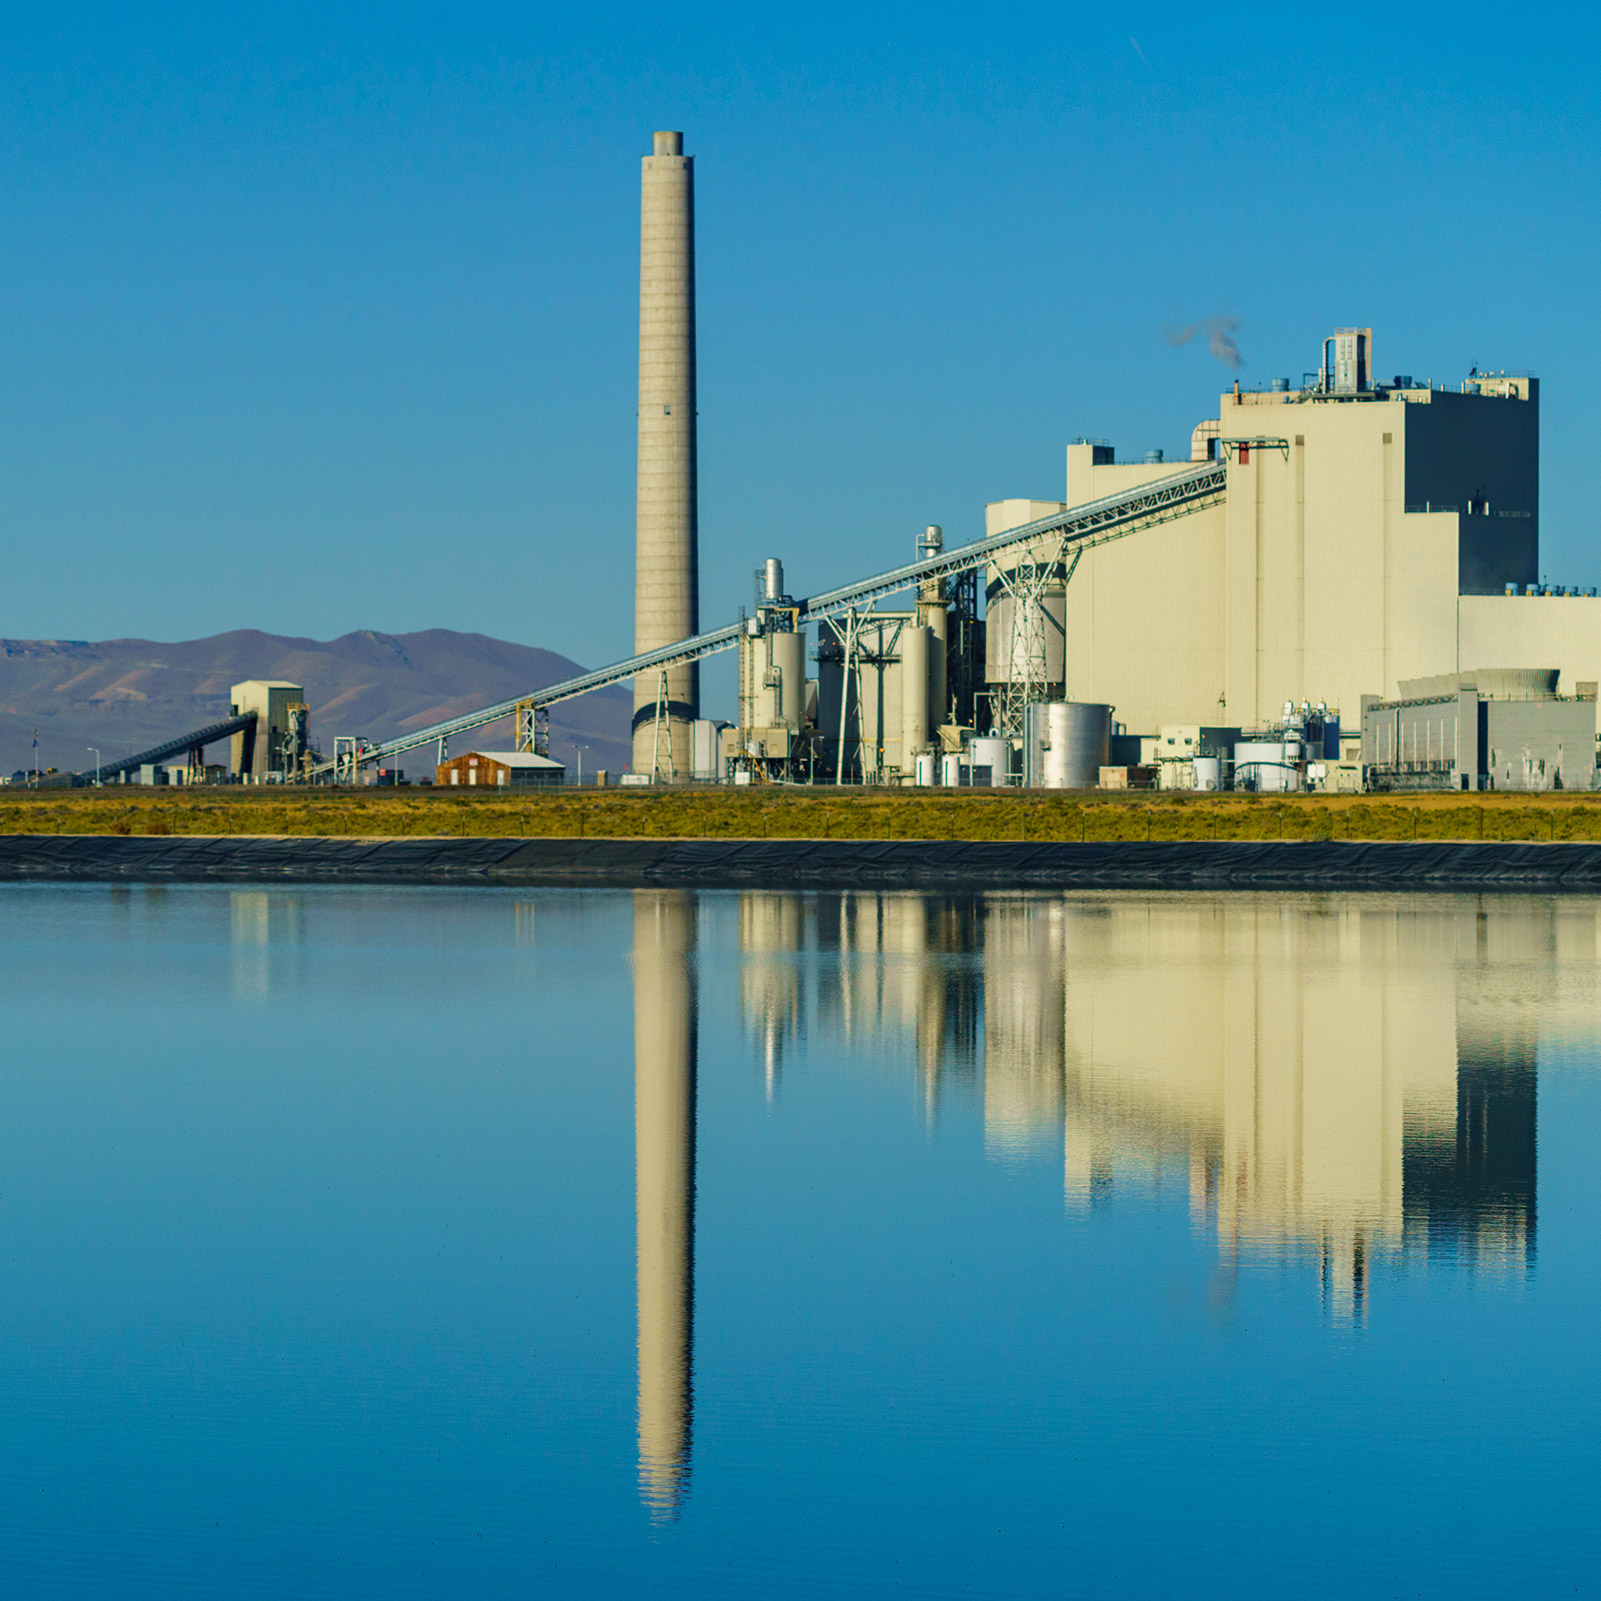 The TS coal fired power plant at Nevada Gold Mines is expected to be converted to run on cleaner natural gas, significantly reducing our GHG emissions.